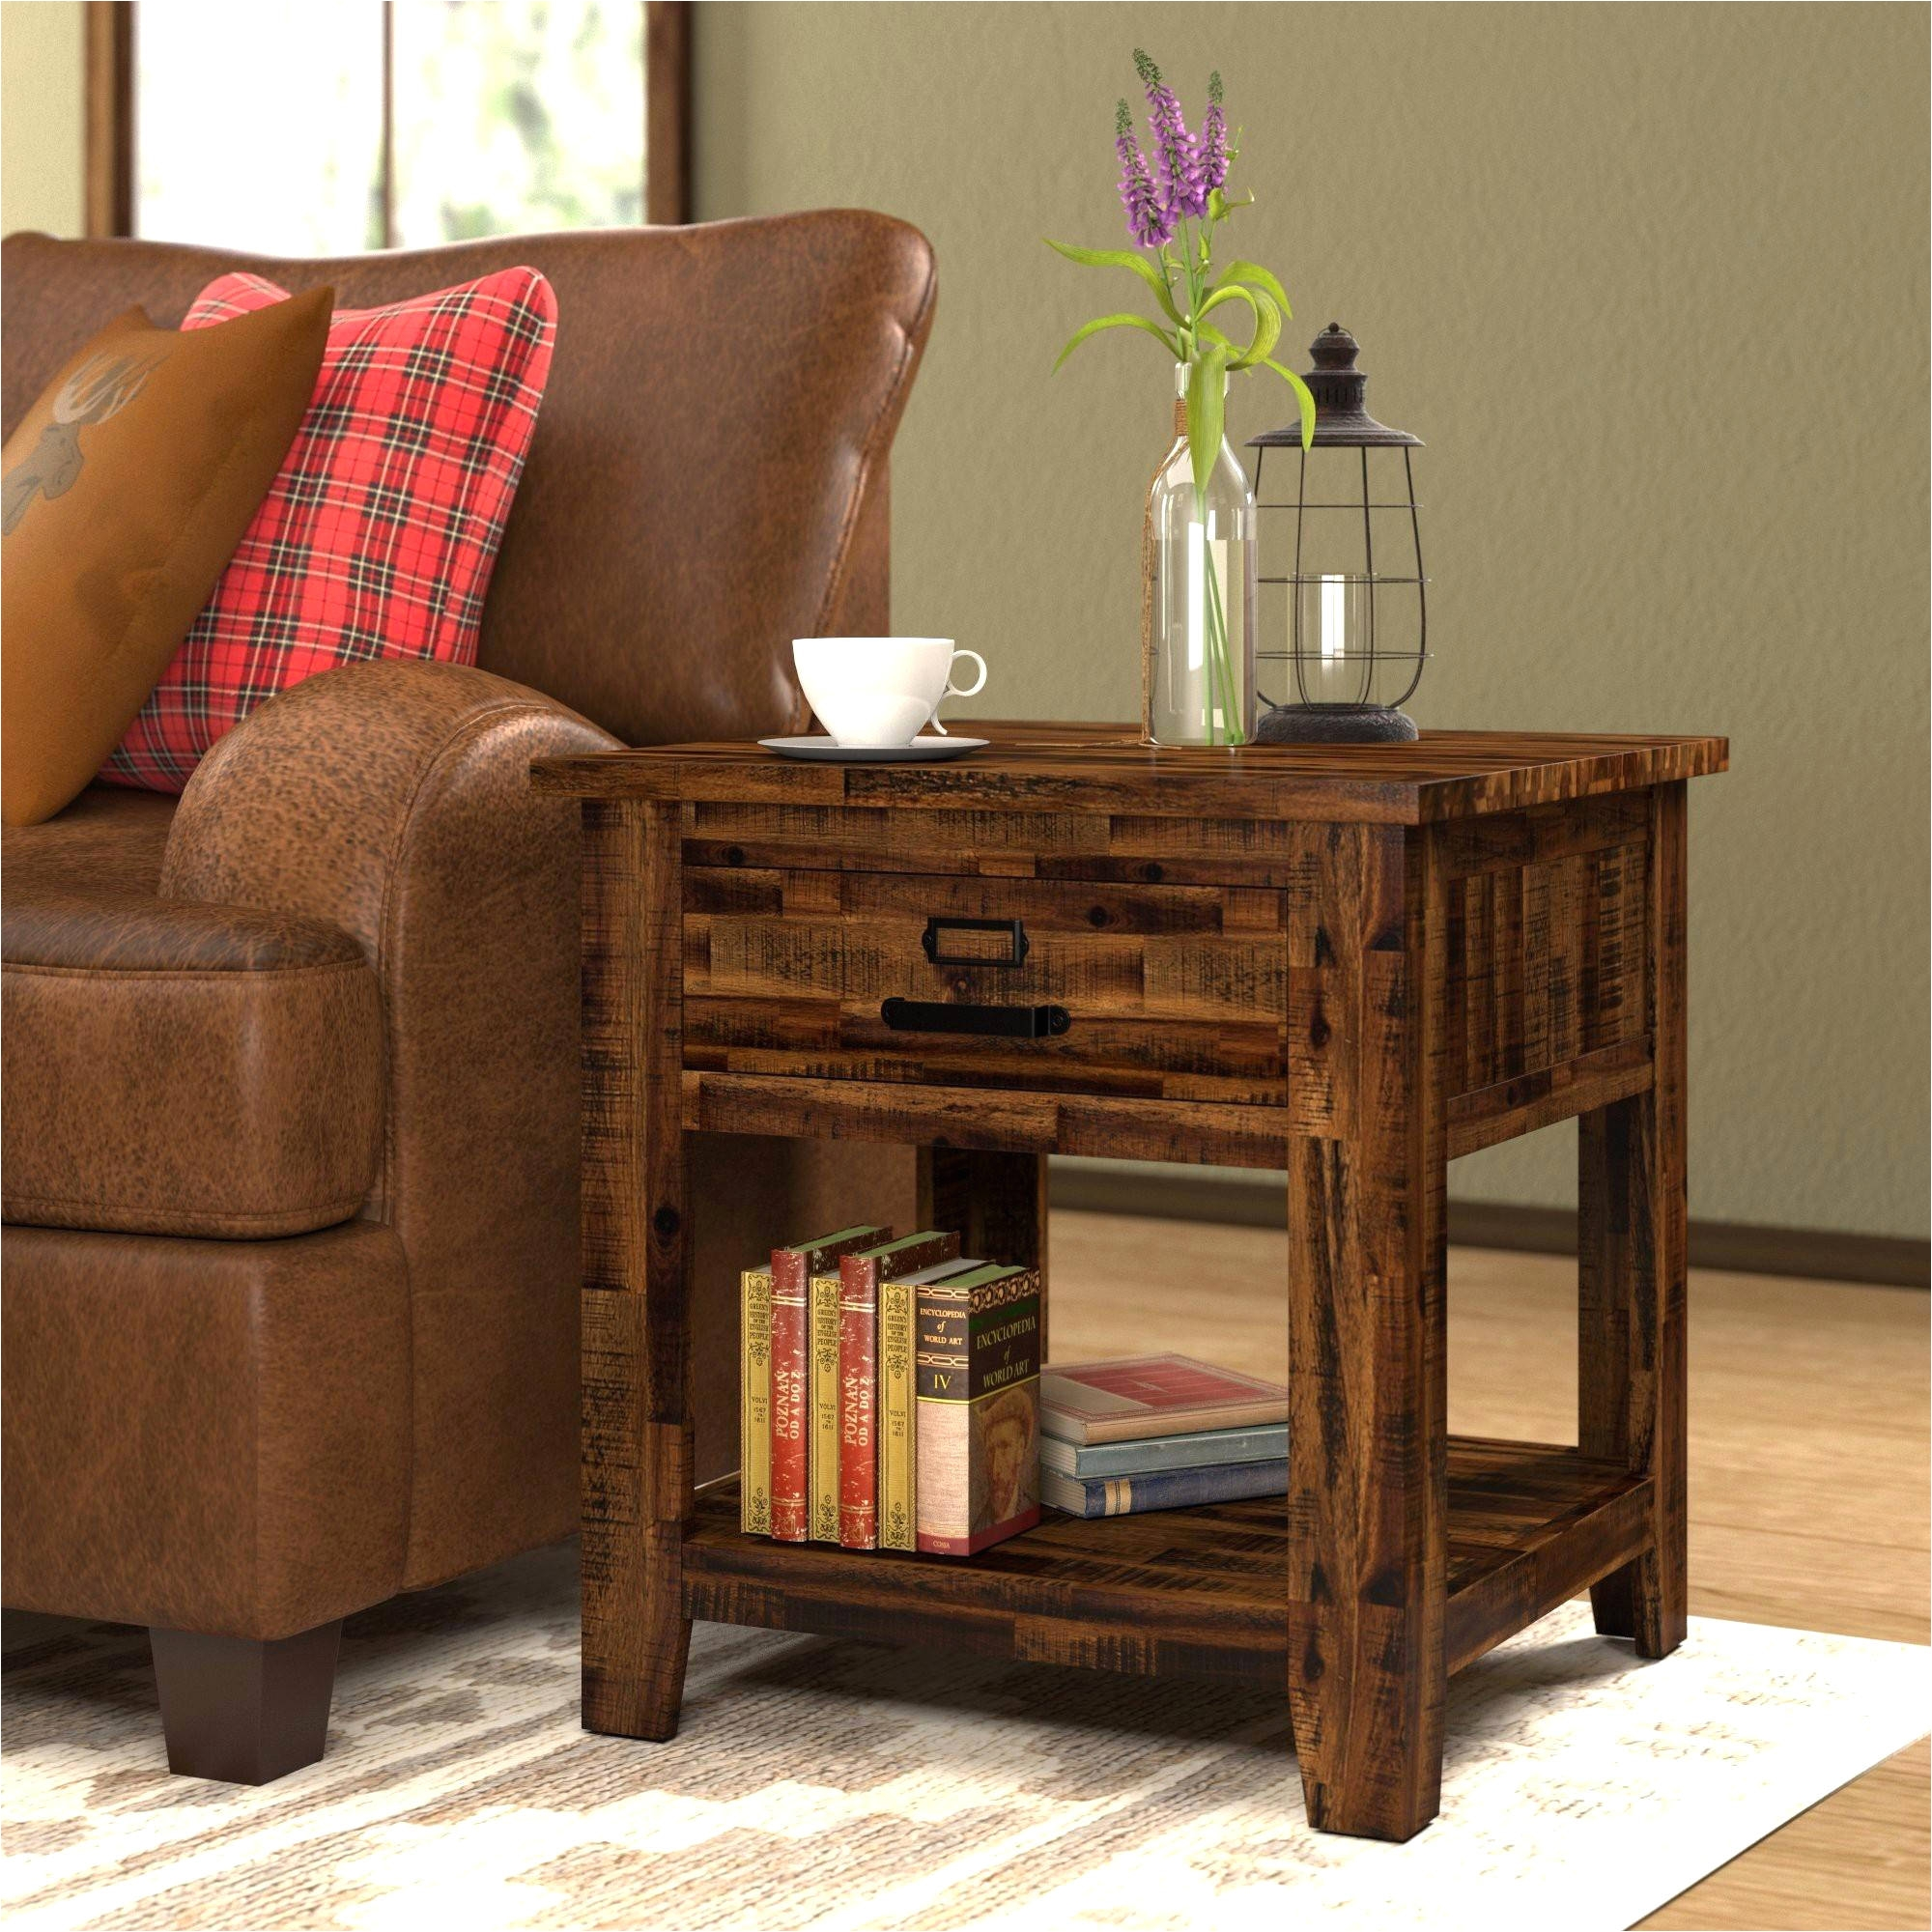 Modern Rustic Coffee Table Canada Luxury 47 Inspirational Pics Rustic Coffee Tables with Storage Coffee